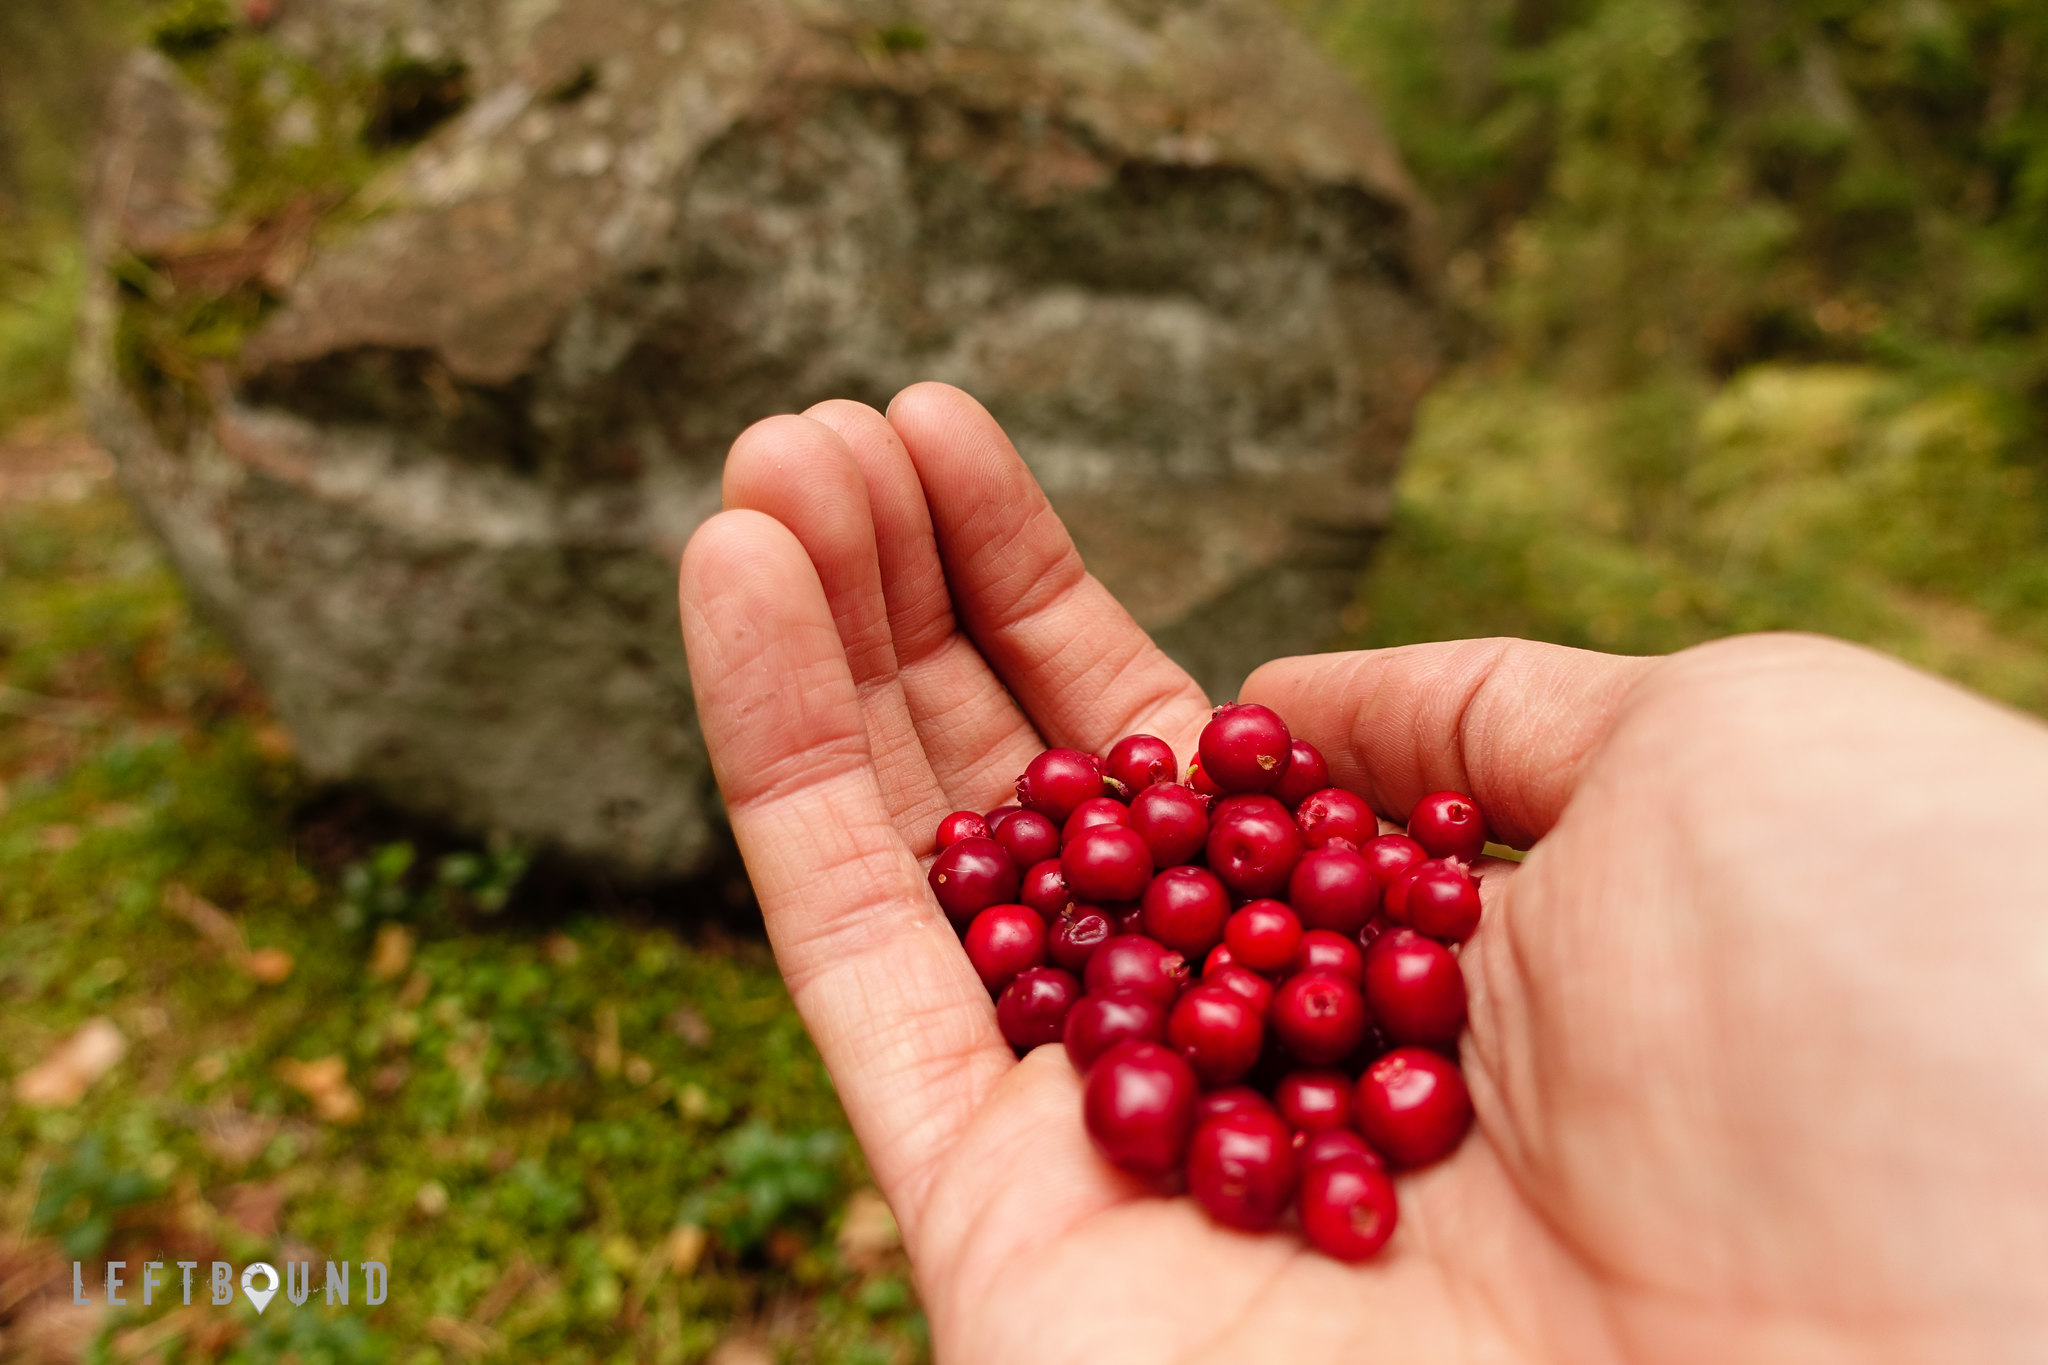 Lingonberries are ripe